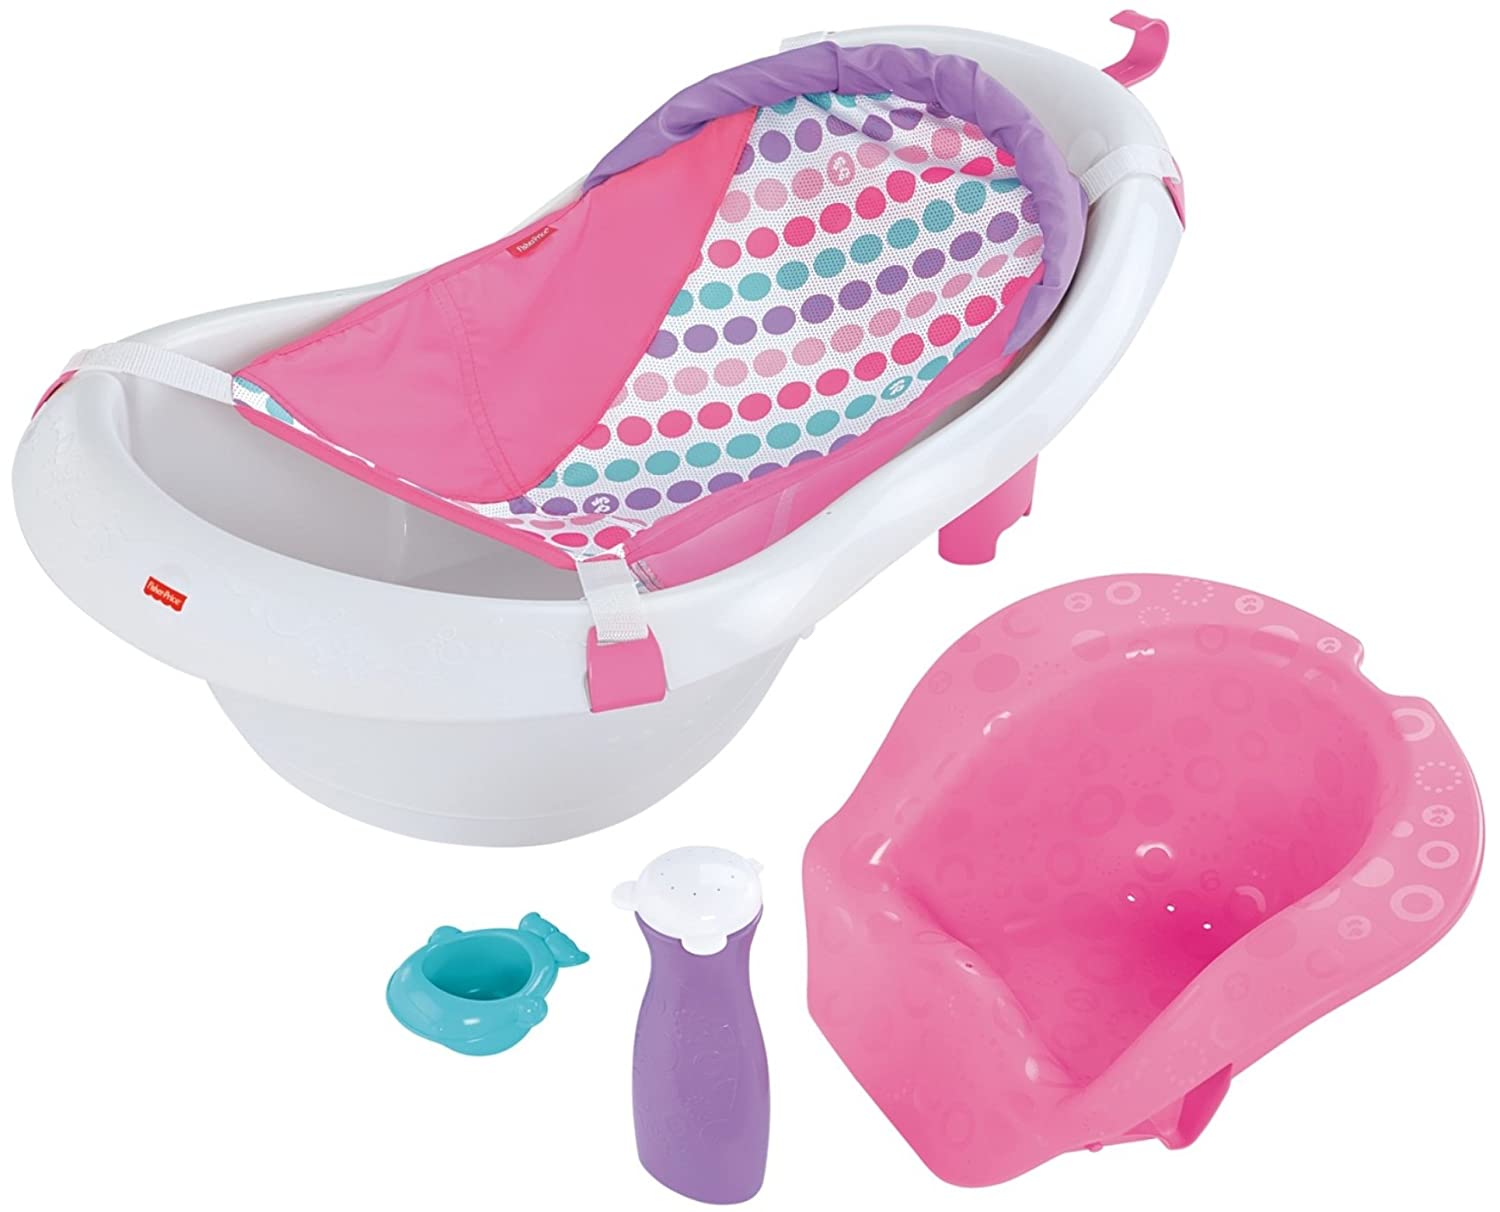 Fisher-Price 4-in-1 Sling 'n Seat Tub, Pink FHL04